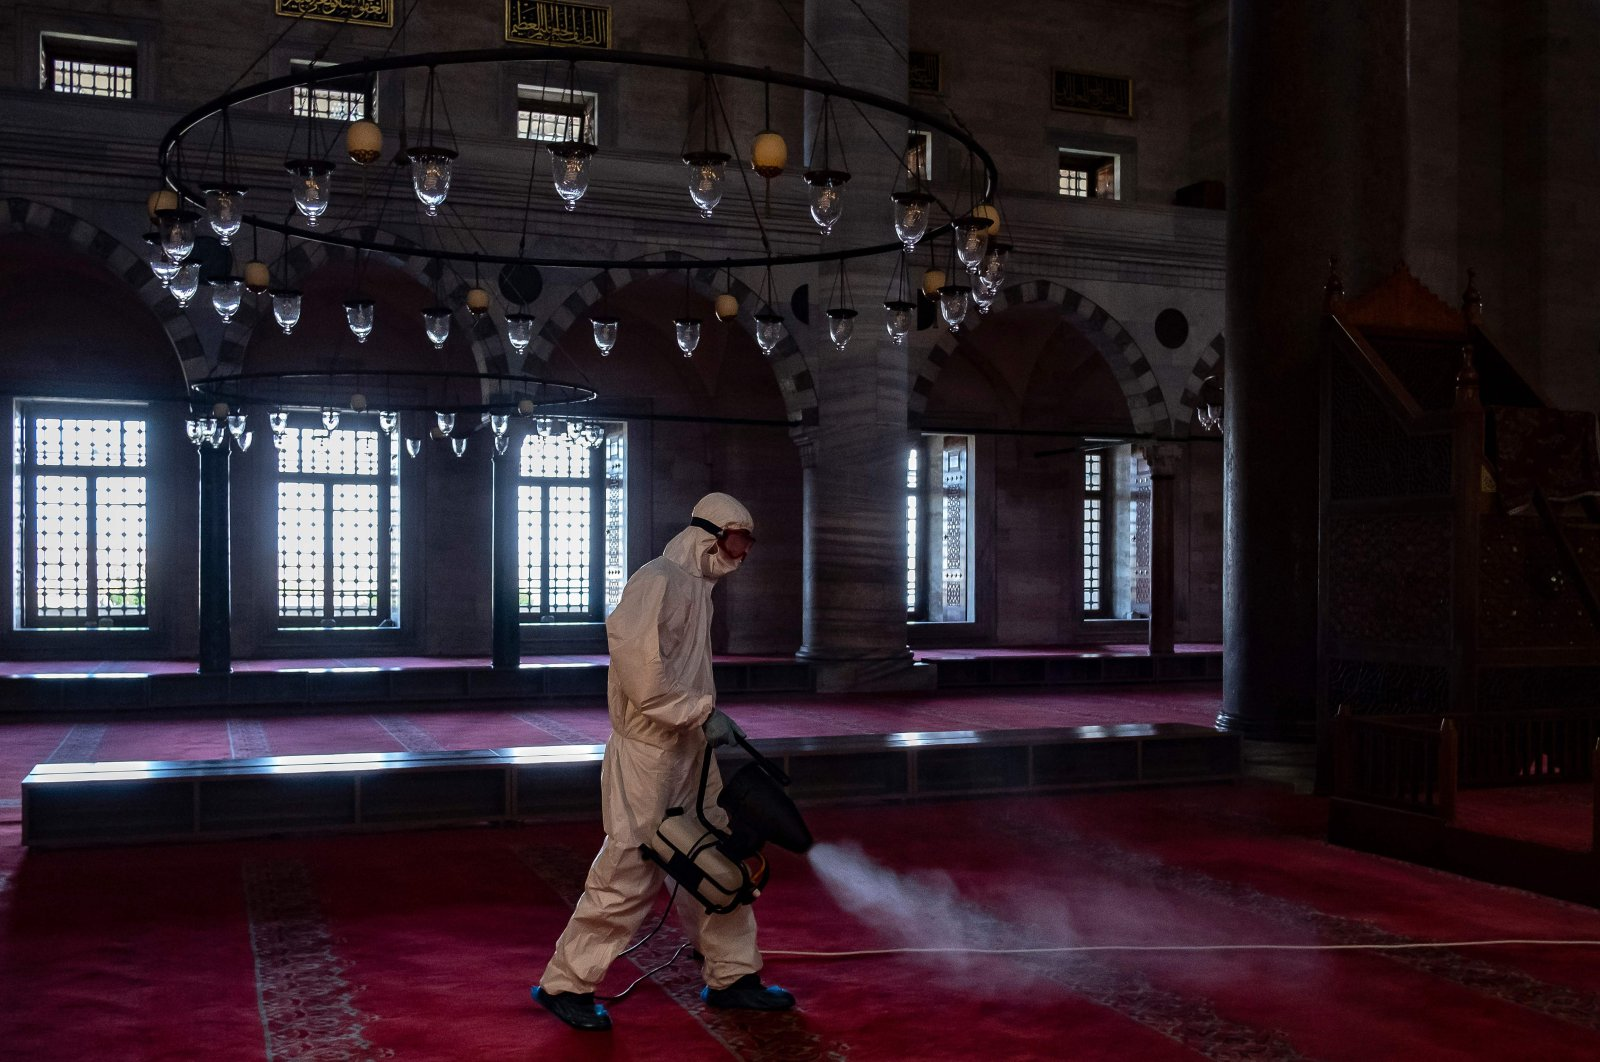 A Fatih Municipality worker disinfects the Suleymaniye Mosque before its reopening on the last day of the Eid al-Fitr in Istanbul, on May 26, 2020 amid the spread of the COVID-19 pandemic, caused by the novel coronavirus. (AFP Photo)